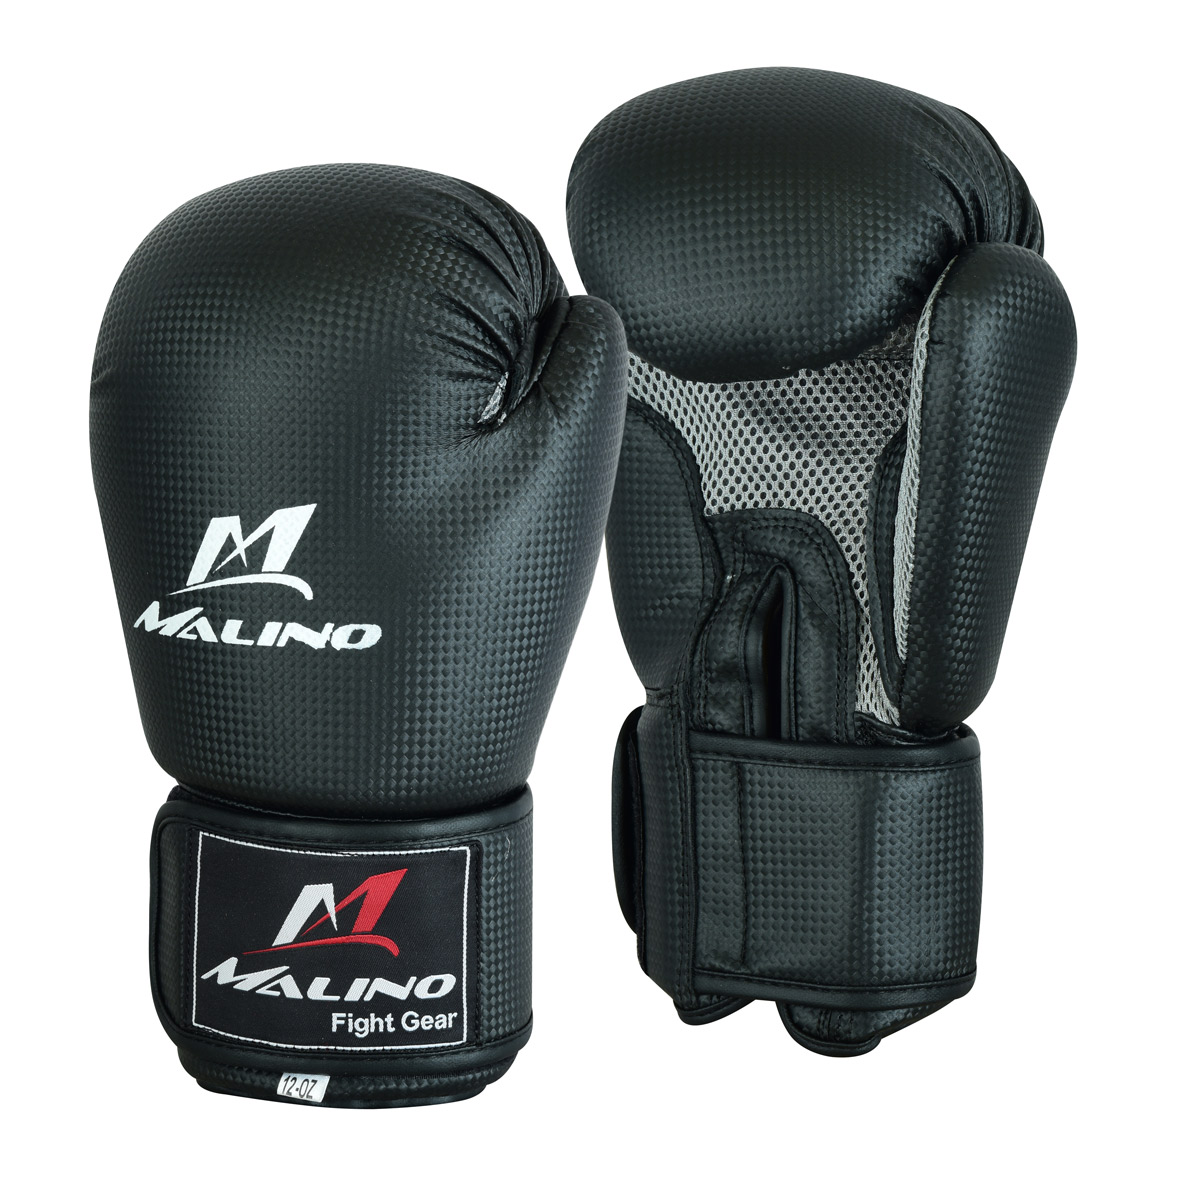 Leather Boxing Gloves for Men Carbon Black